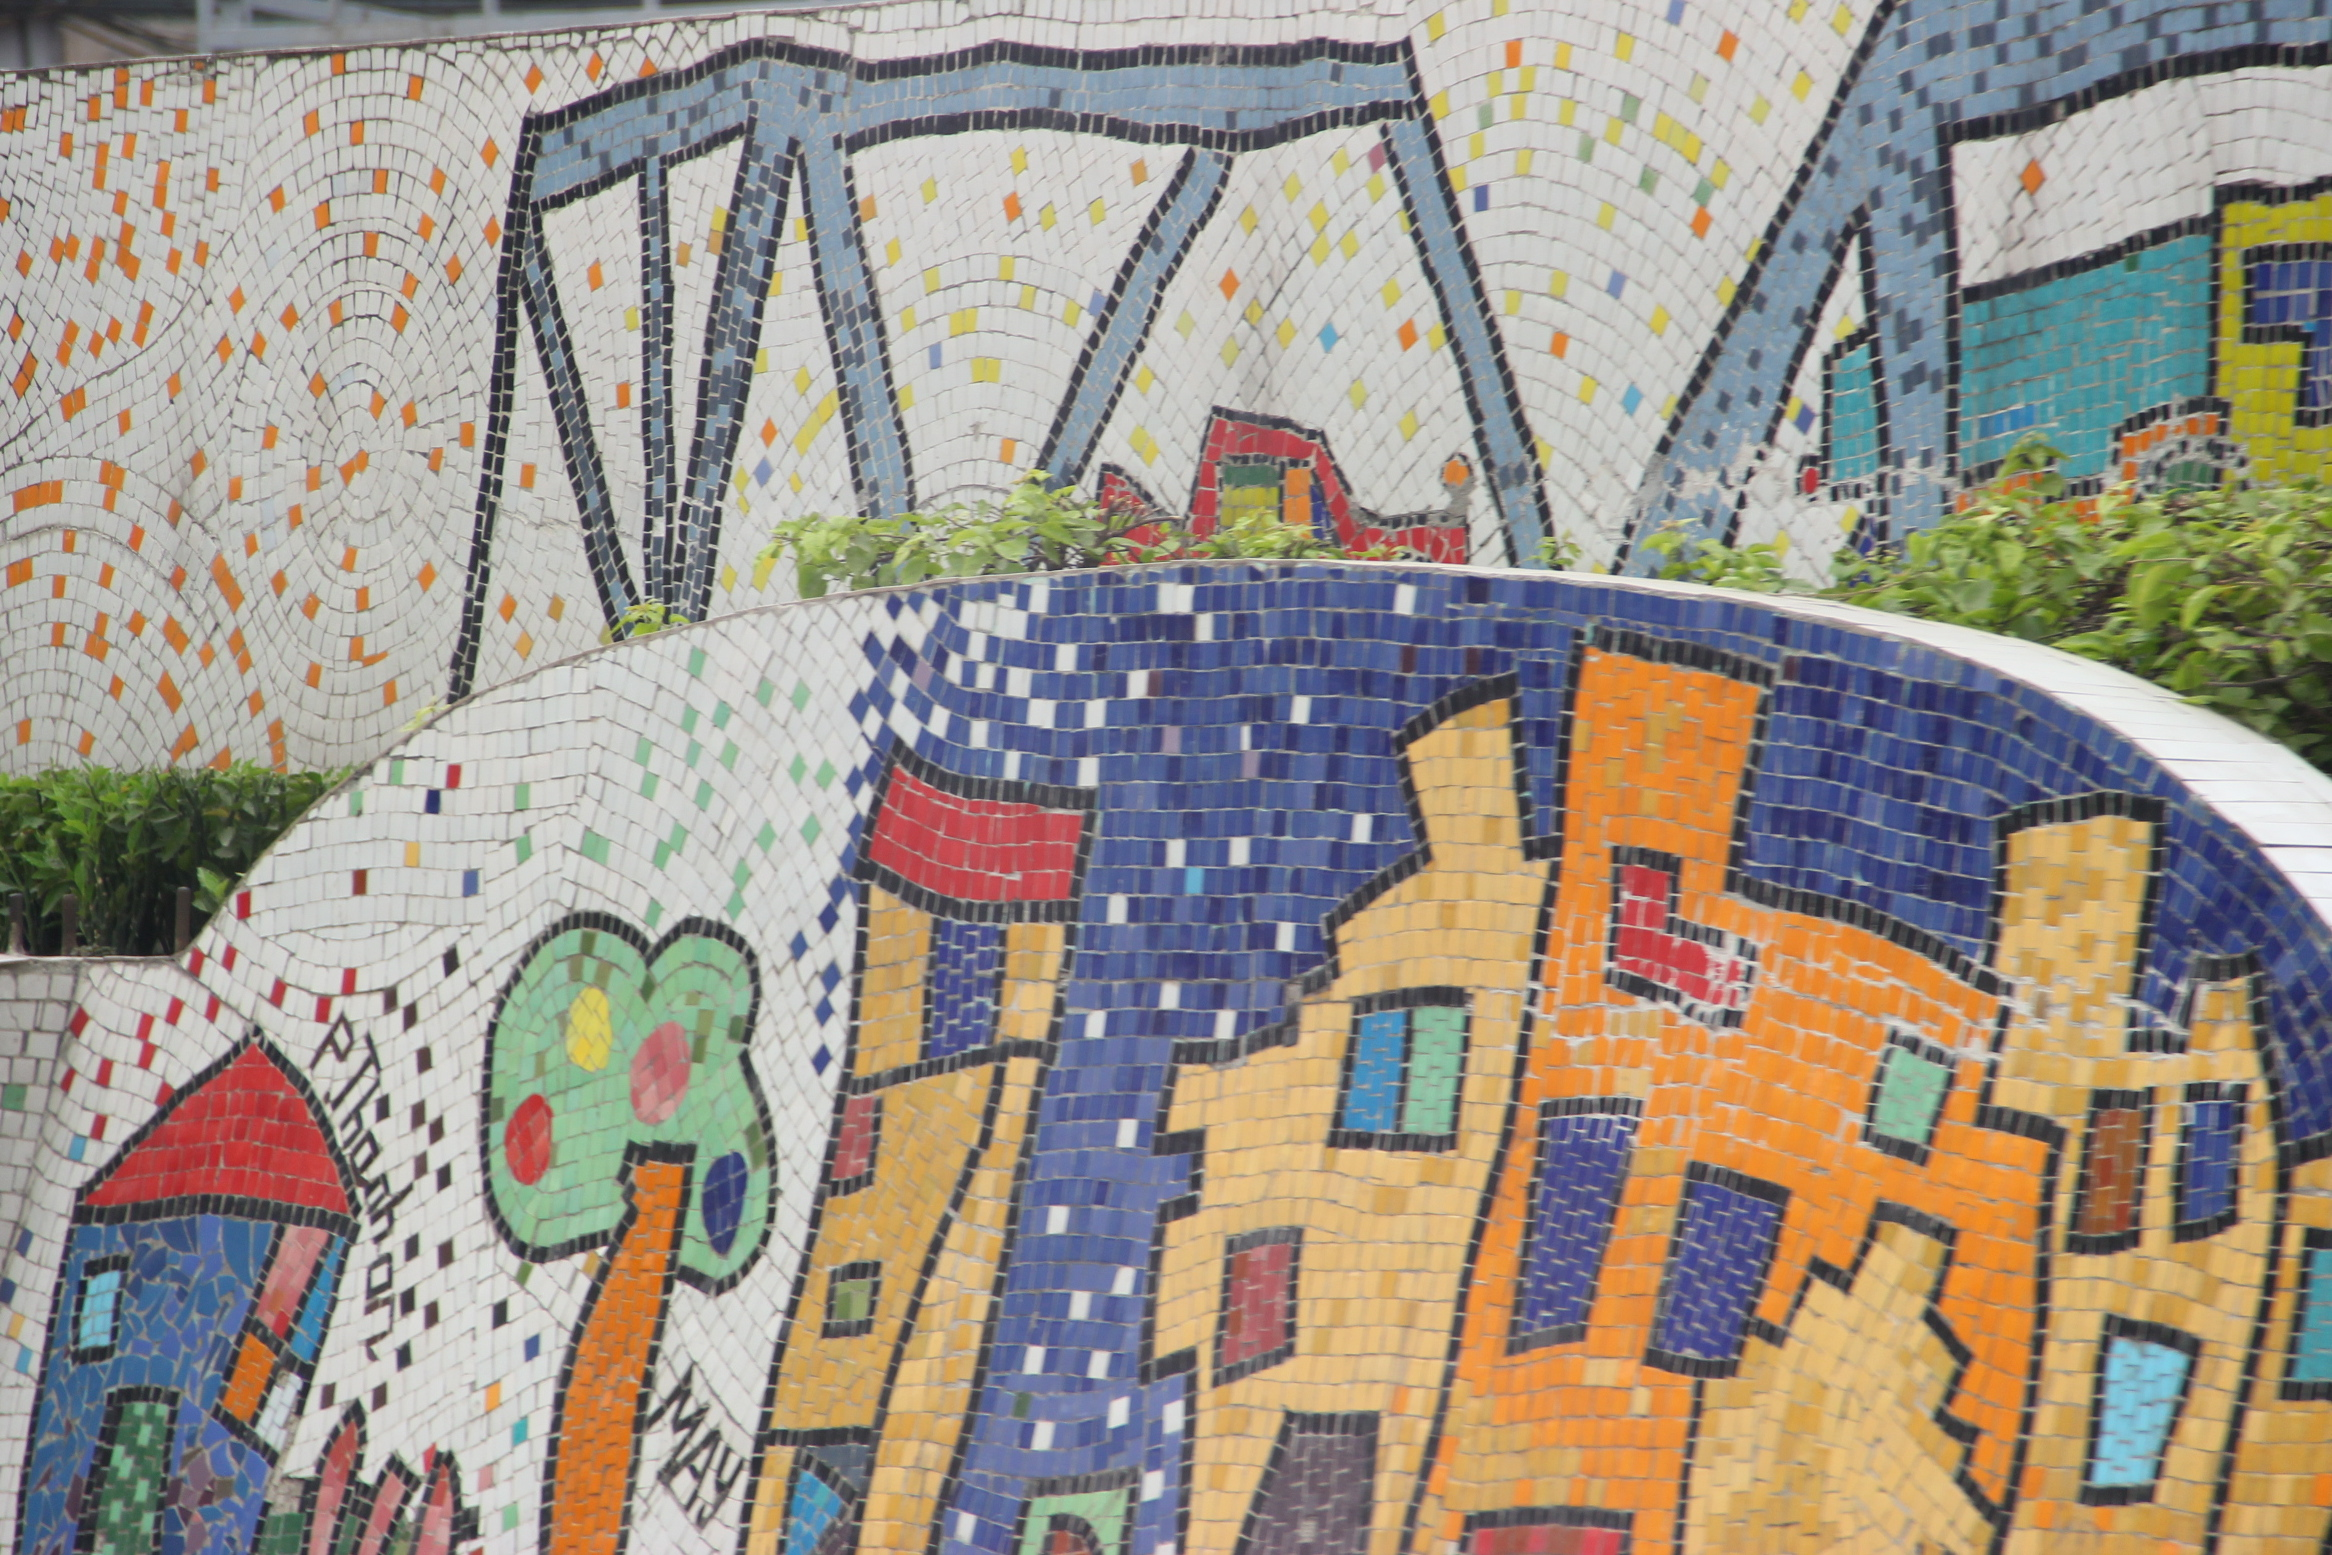 According To The Guinness Book Of World Records Hanoi Ceramic Mosaic Mural Is Largest In This Four Kilometer Long Artwork